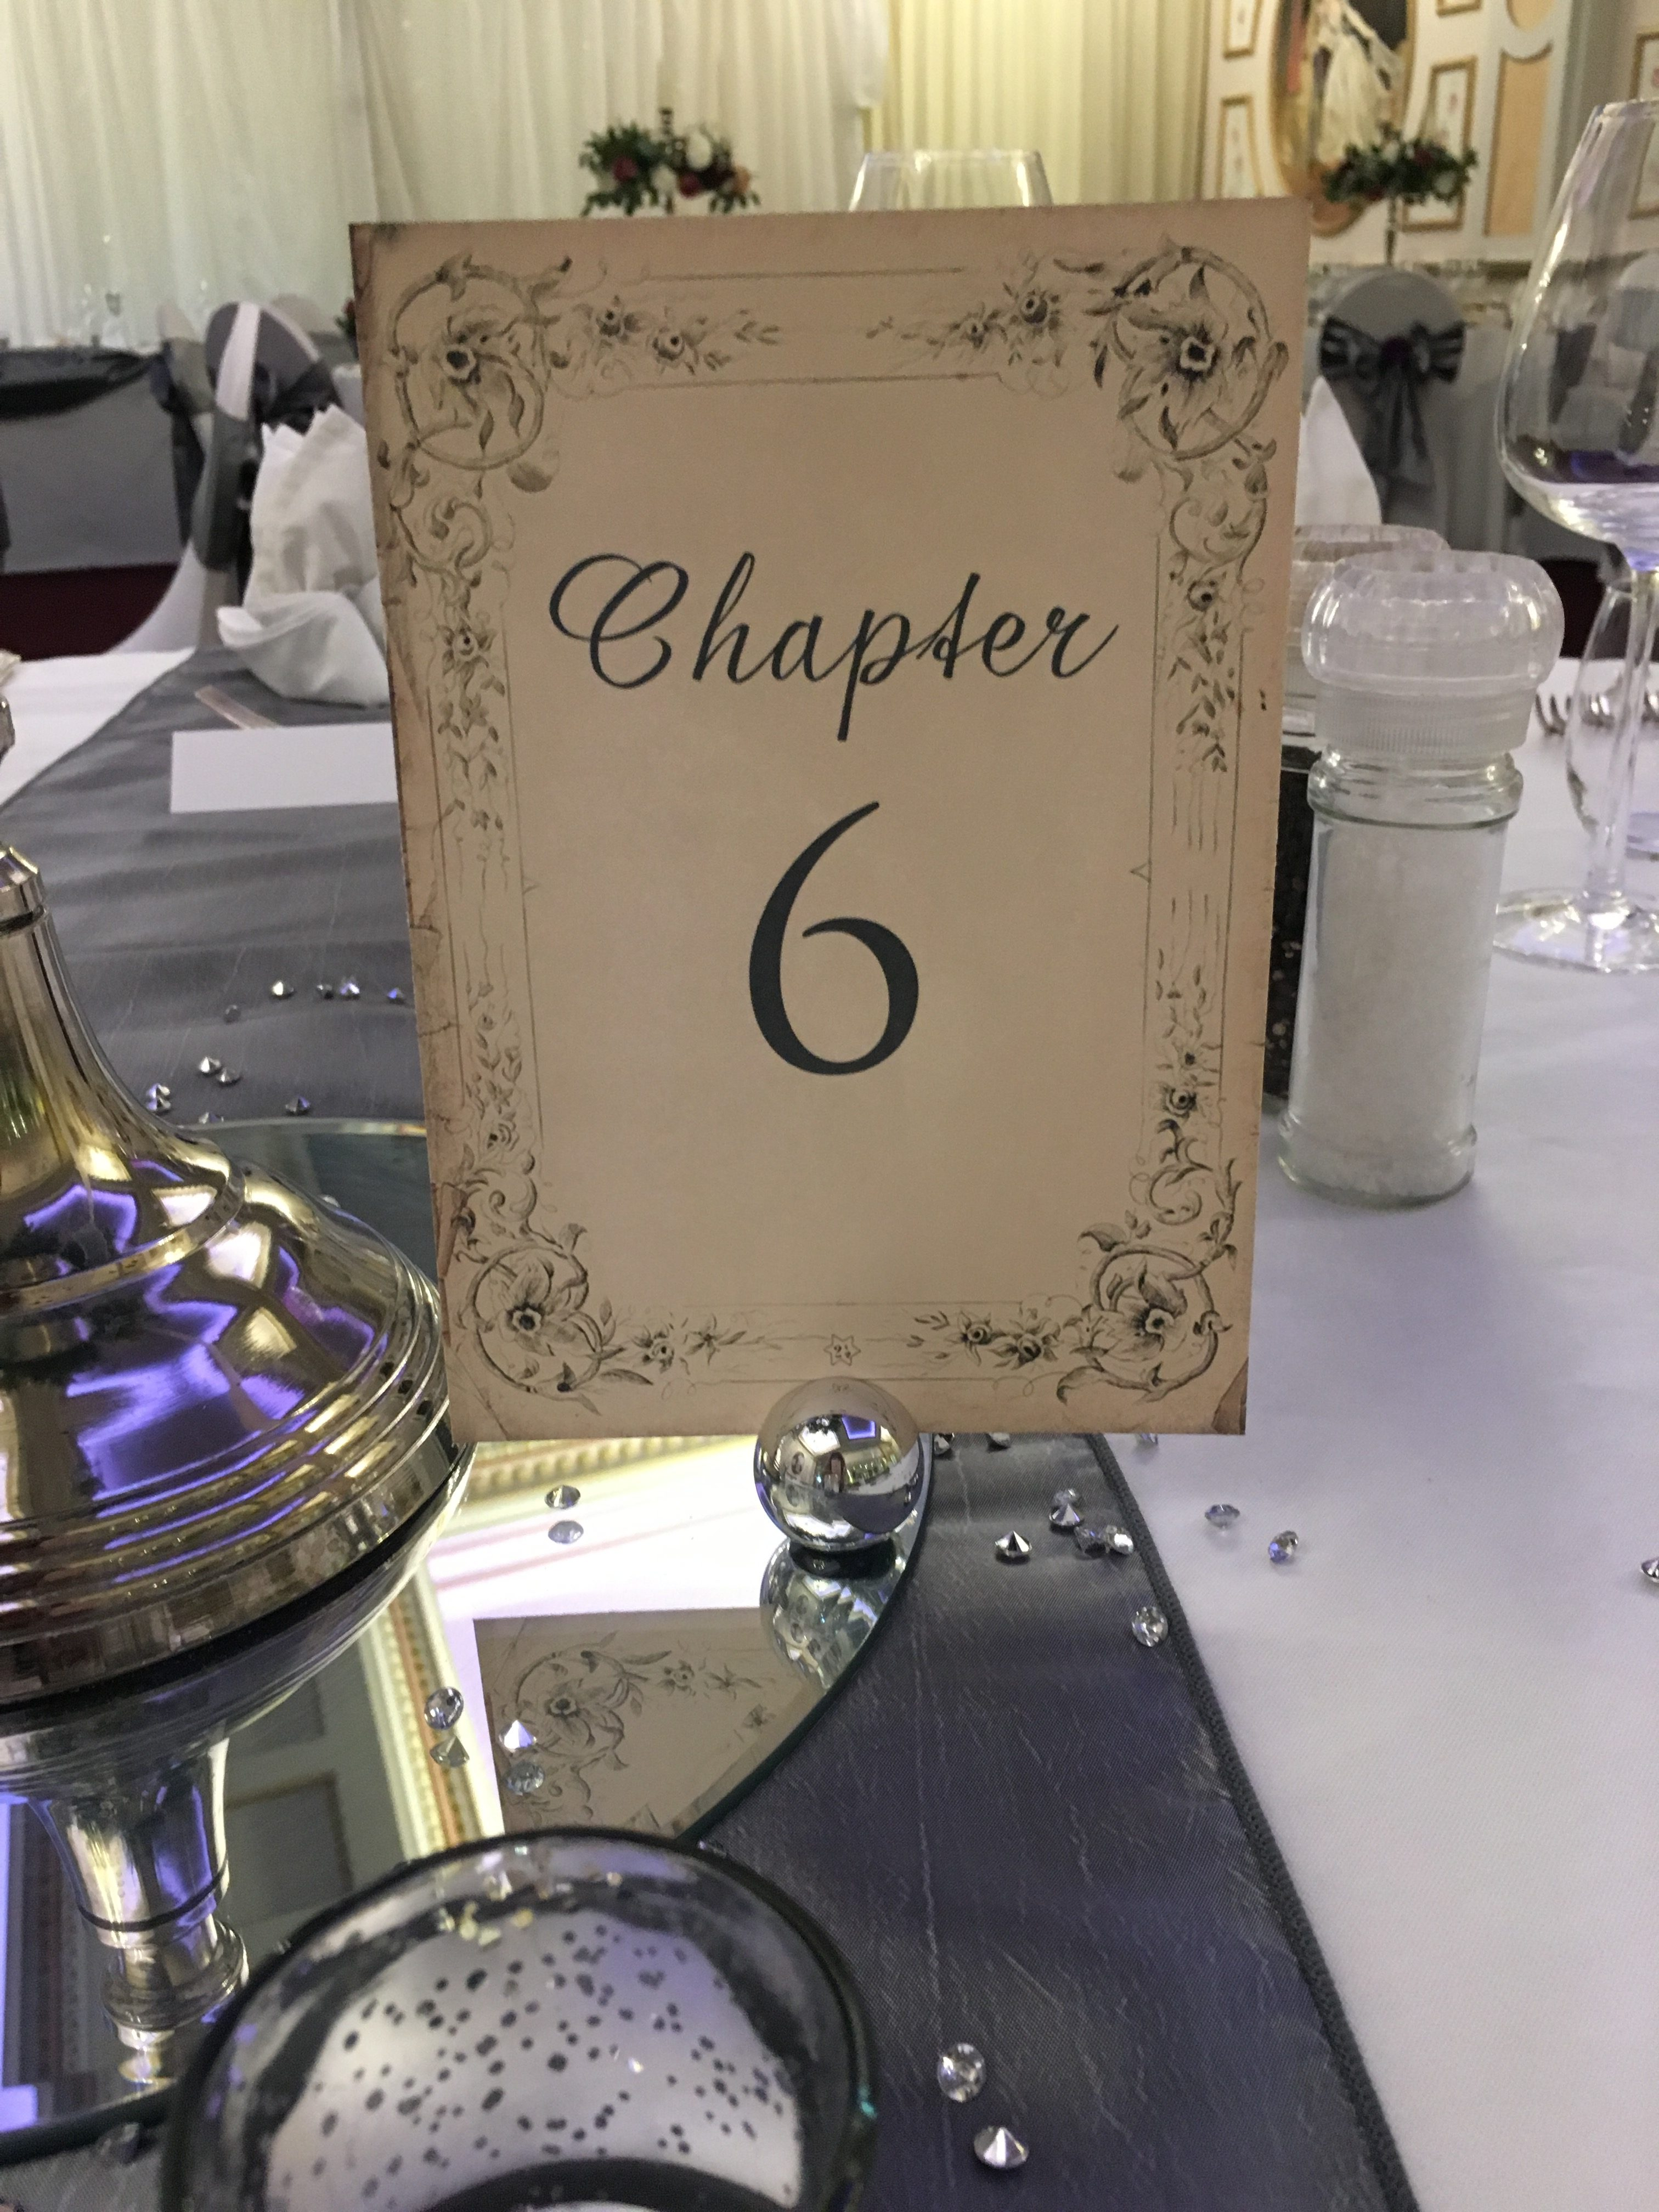 Disney Book Table Numbers Sophia's Final Touch - Venue Styling - Weddings